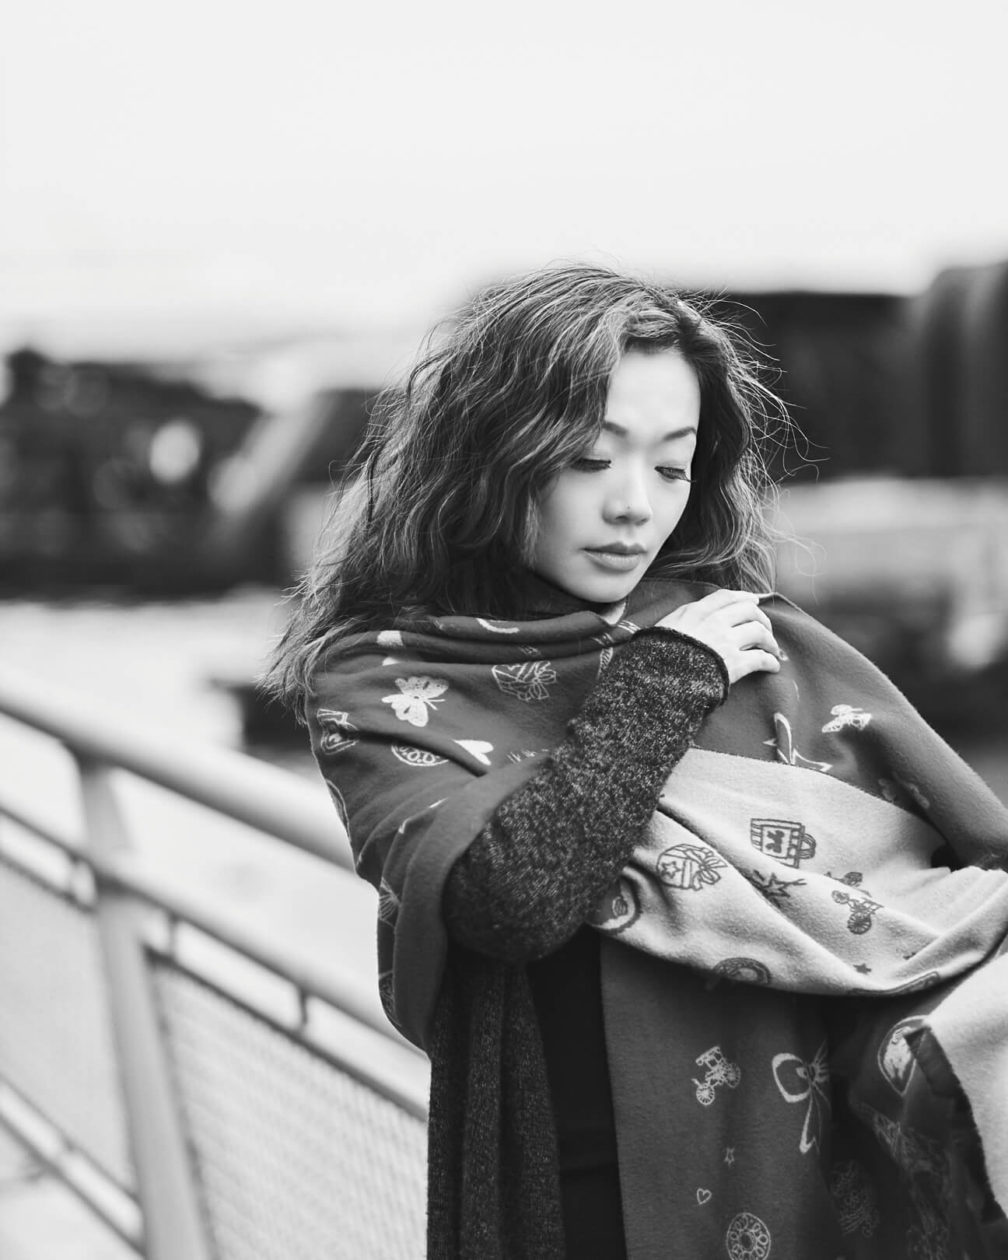 Fuji X Pro2 with xf 56mm f1.2 - Asian woman with scarf - Black and White Portrait Fashion Photography in Riverside Park New York - Model: Lise